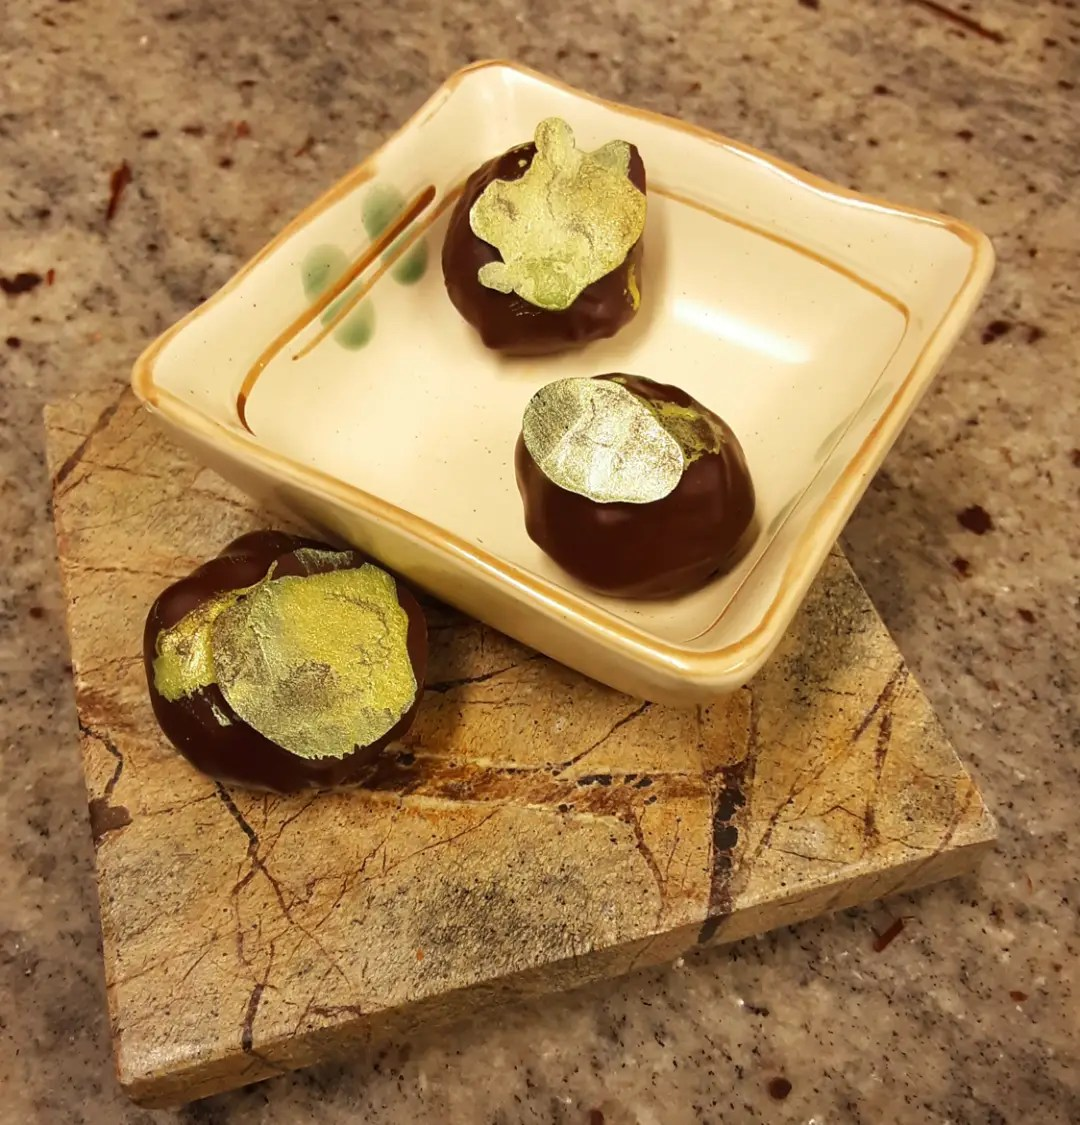 GLASS GREEN: soft dark milk ganache with two kinds of green tea.#chocolatier #greentea #chocolatetruffles #glass in our fiction lies the truths, a story told is all but false, make believe roots deep reality, and the glass shines vivid green